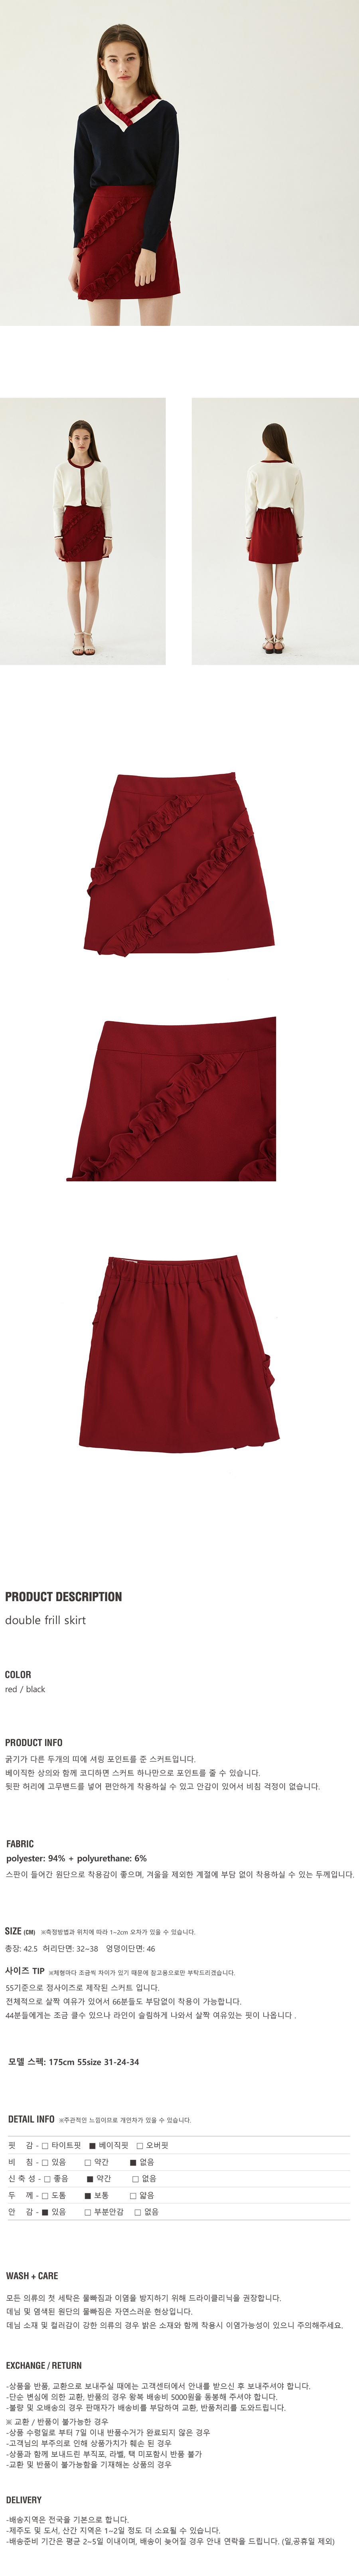 엽페(YUPPE) double frill skirt_red